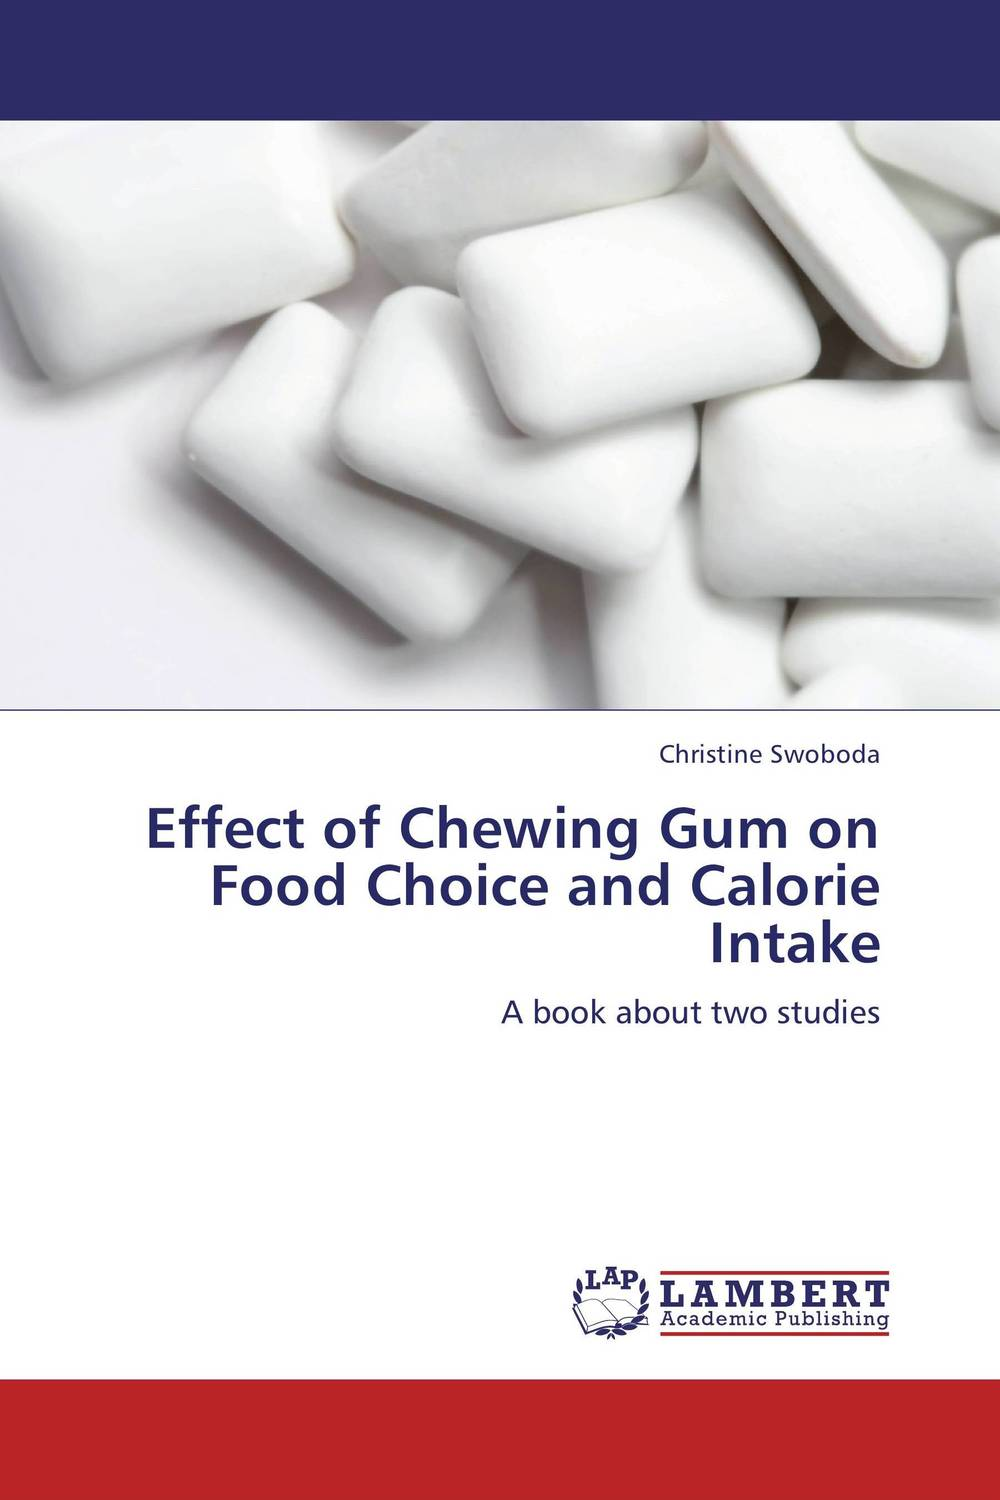 Effect of Chewing Gum on Food Choice and Calorie Intake effect of chewing gum on food choice and calorie intake